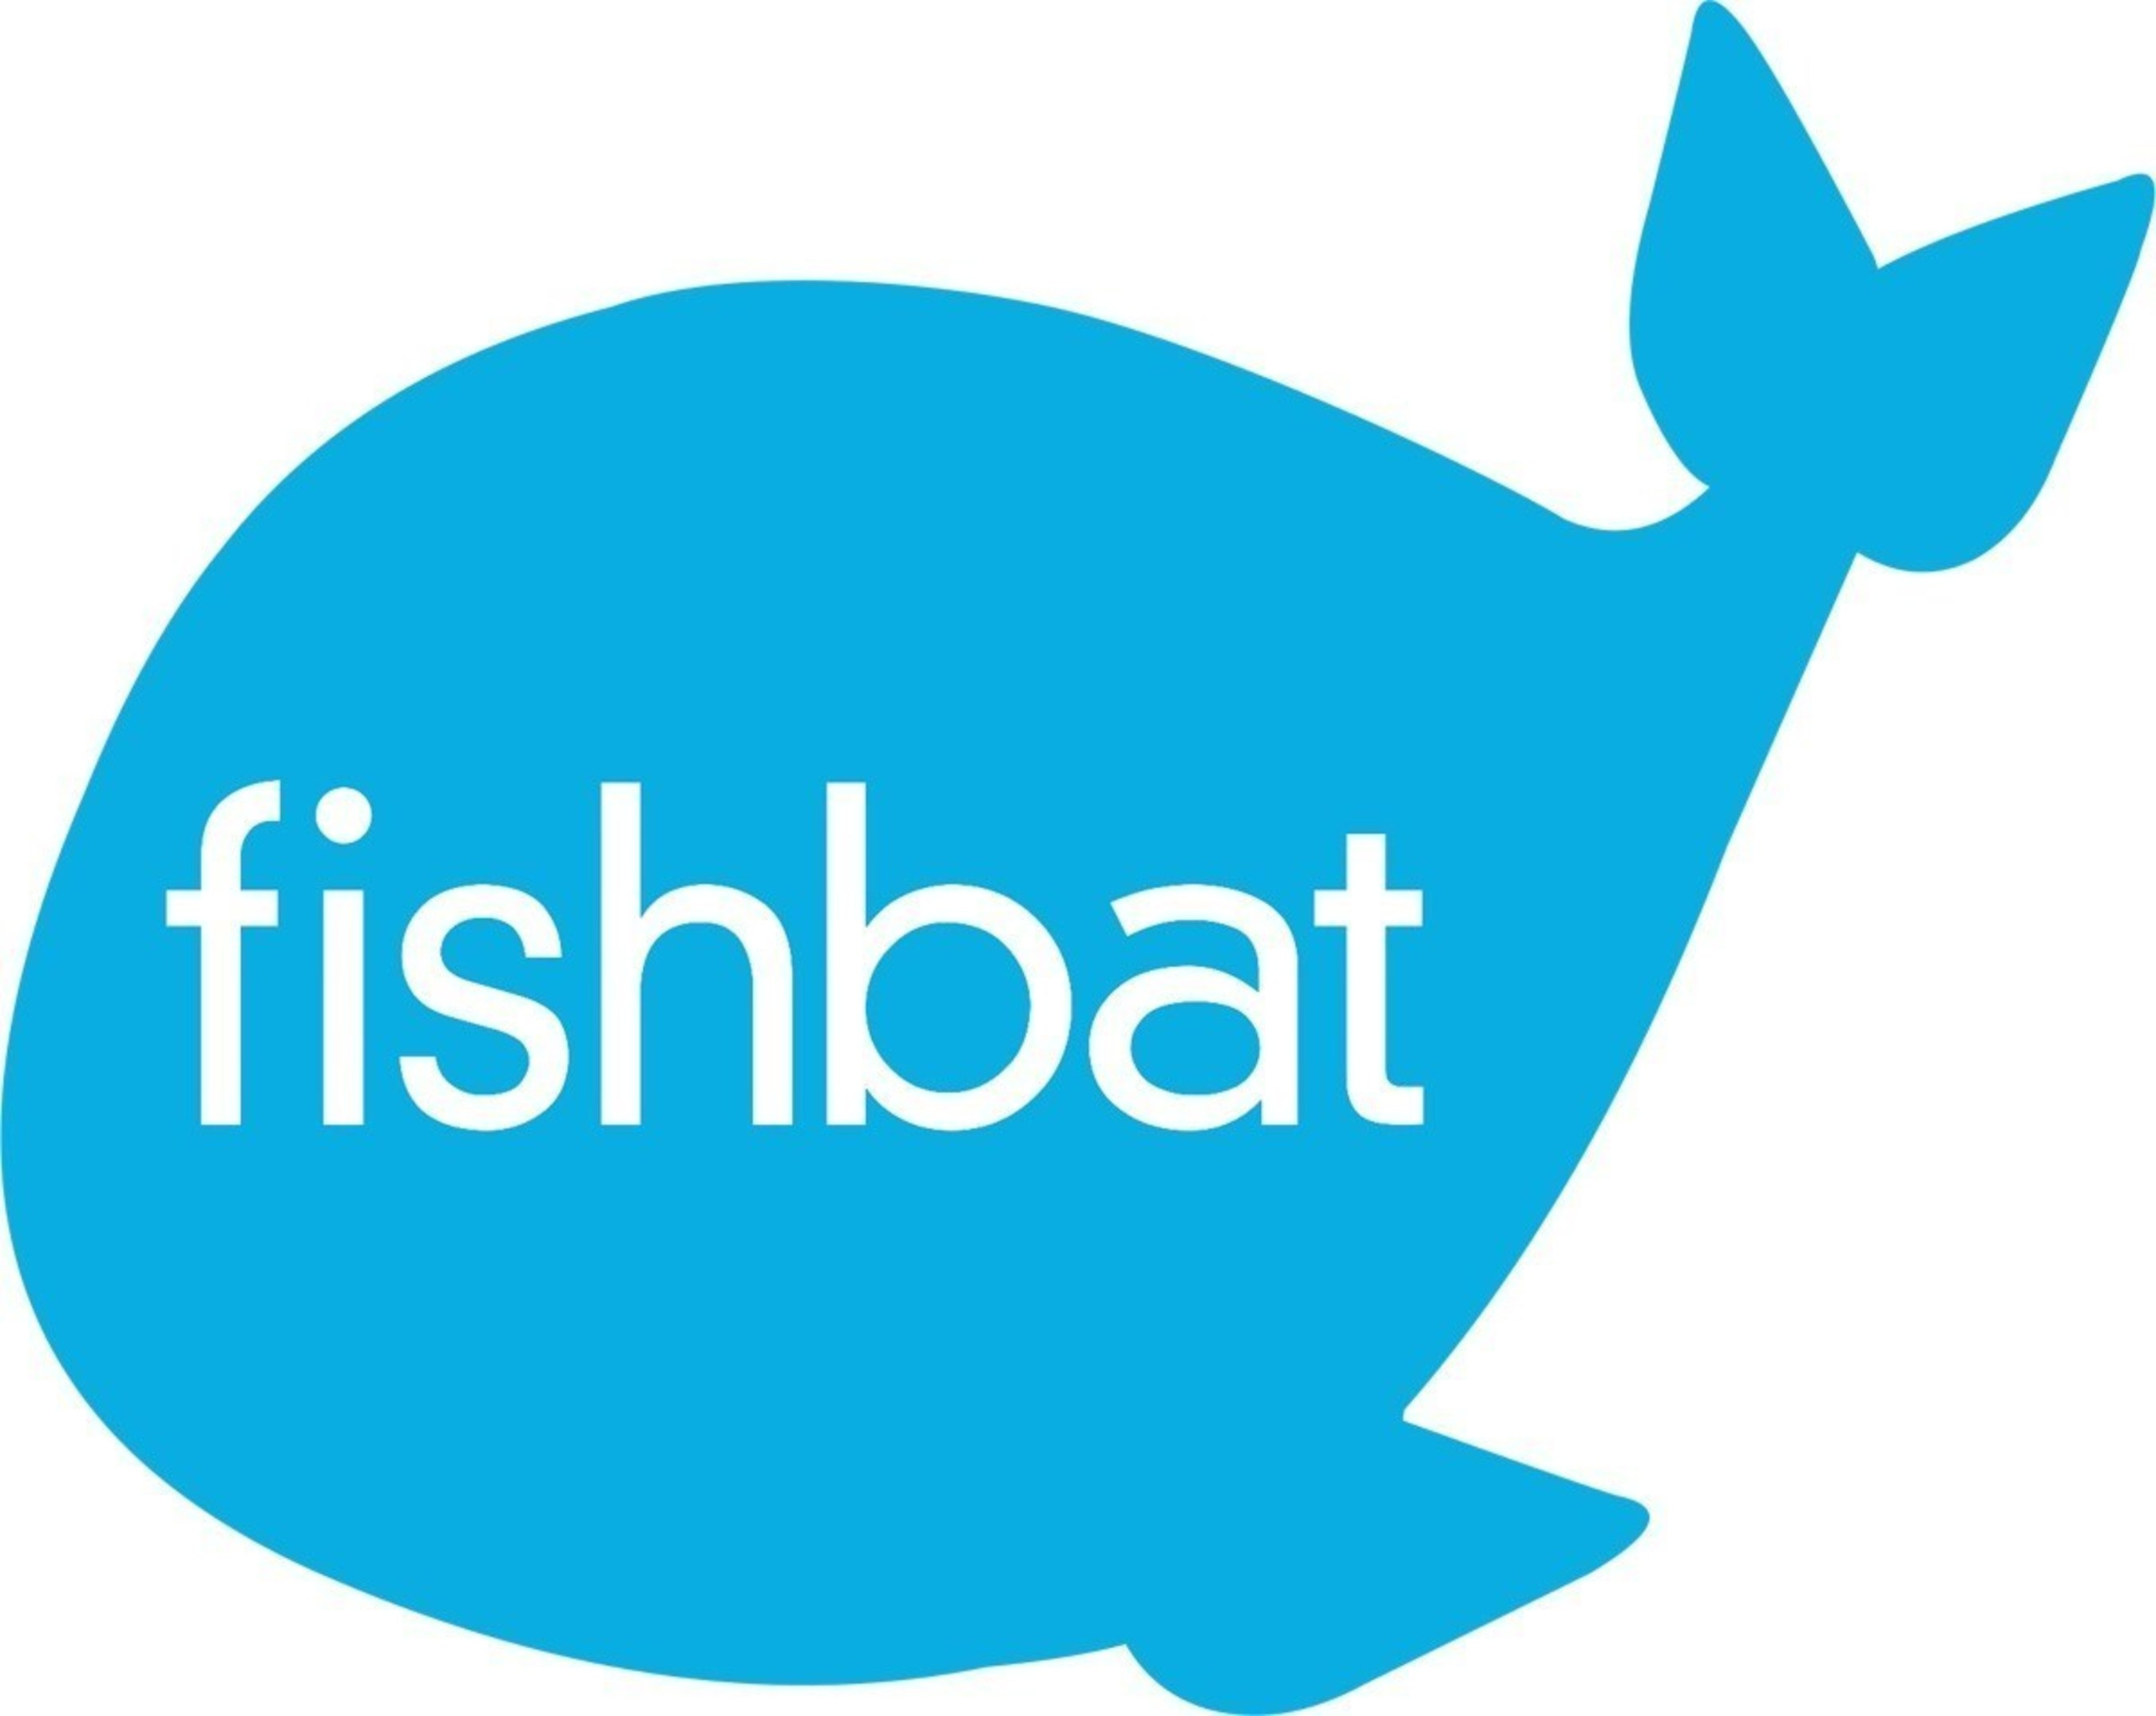 fishbat CMO Jennifer Calise Discusses 5 Web Design Trends for Small Businesses